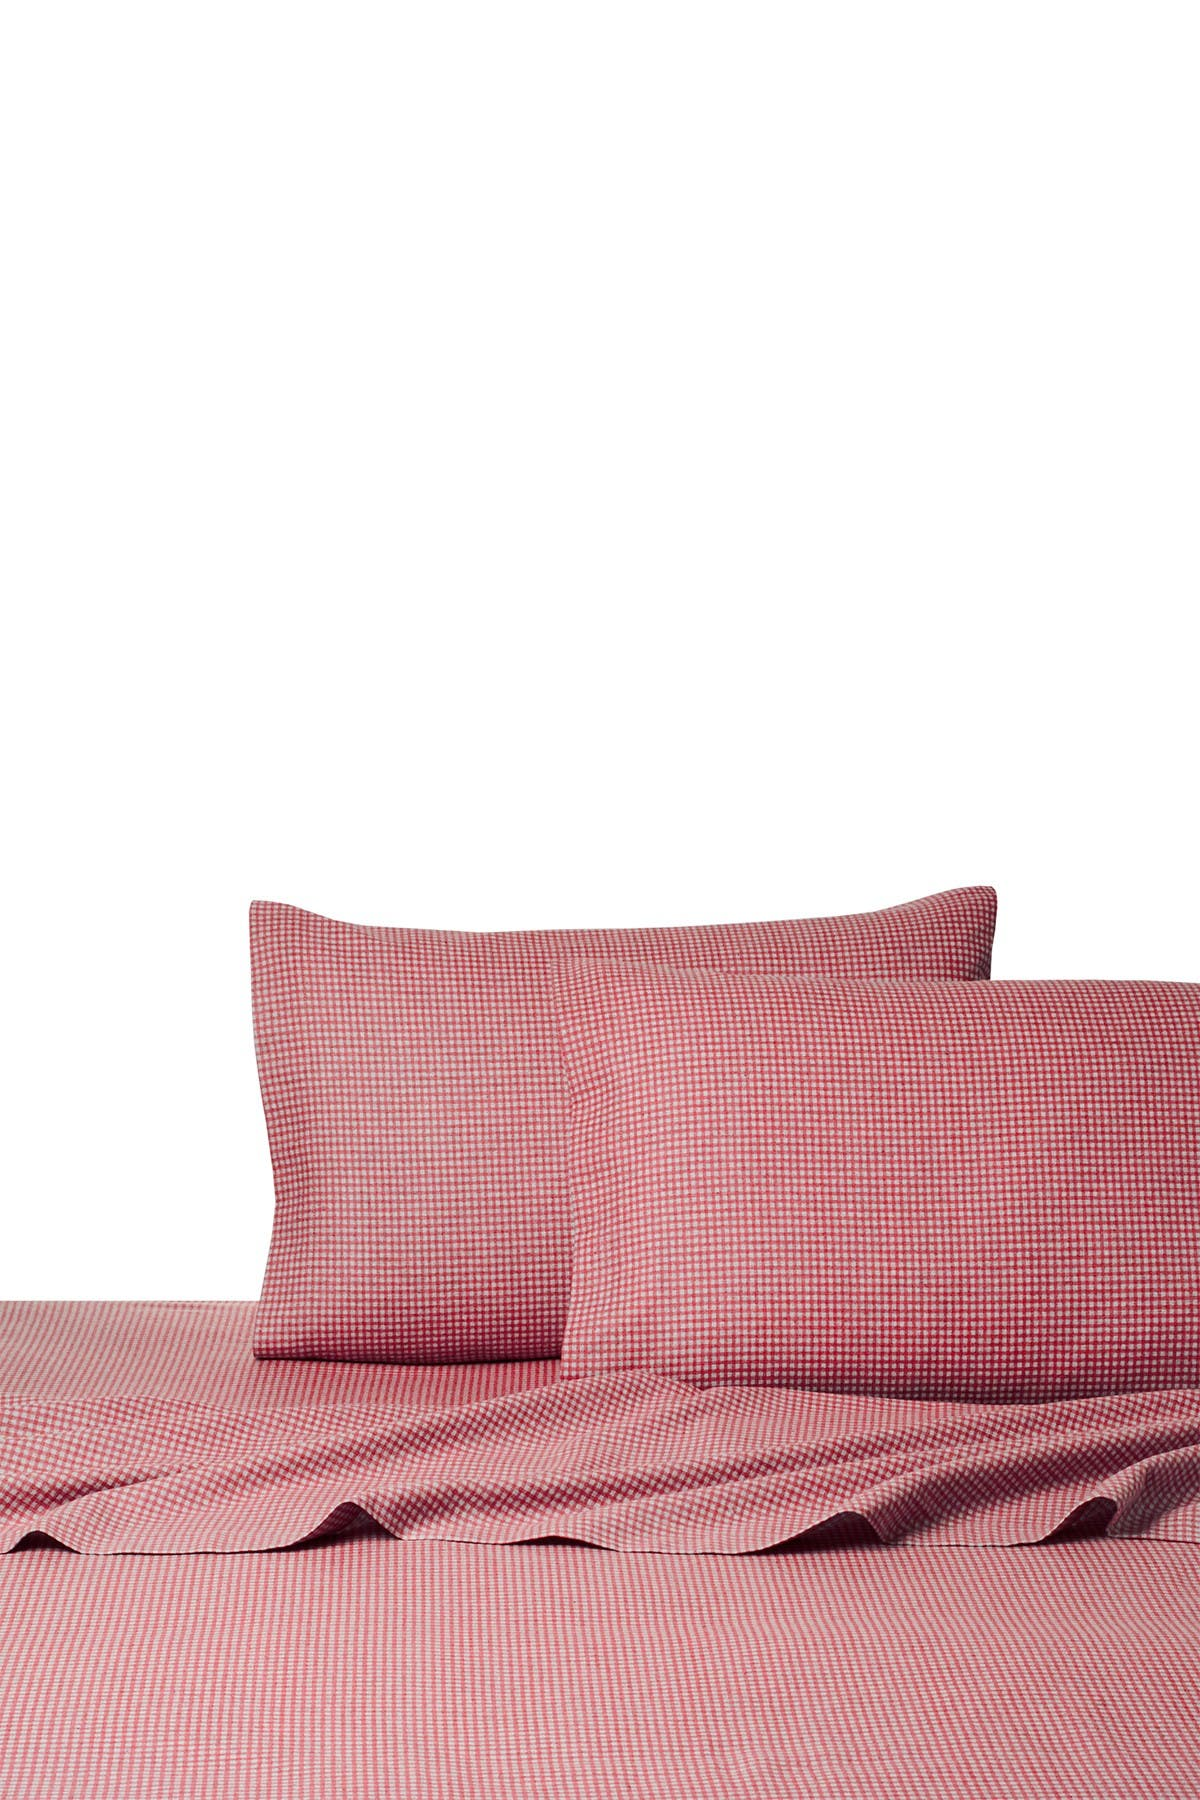 Image of Belle Epoque Heather Ground Flannel Gingham Red - King